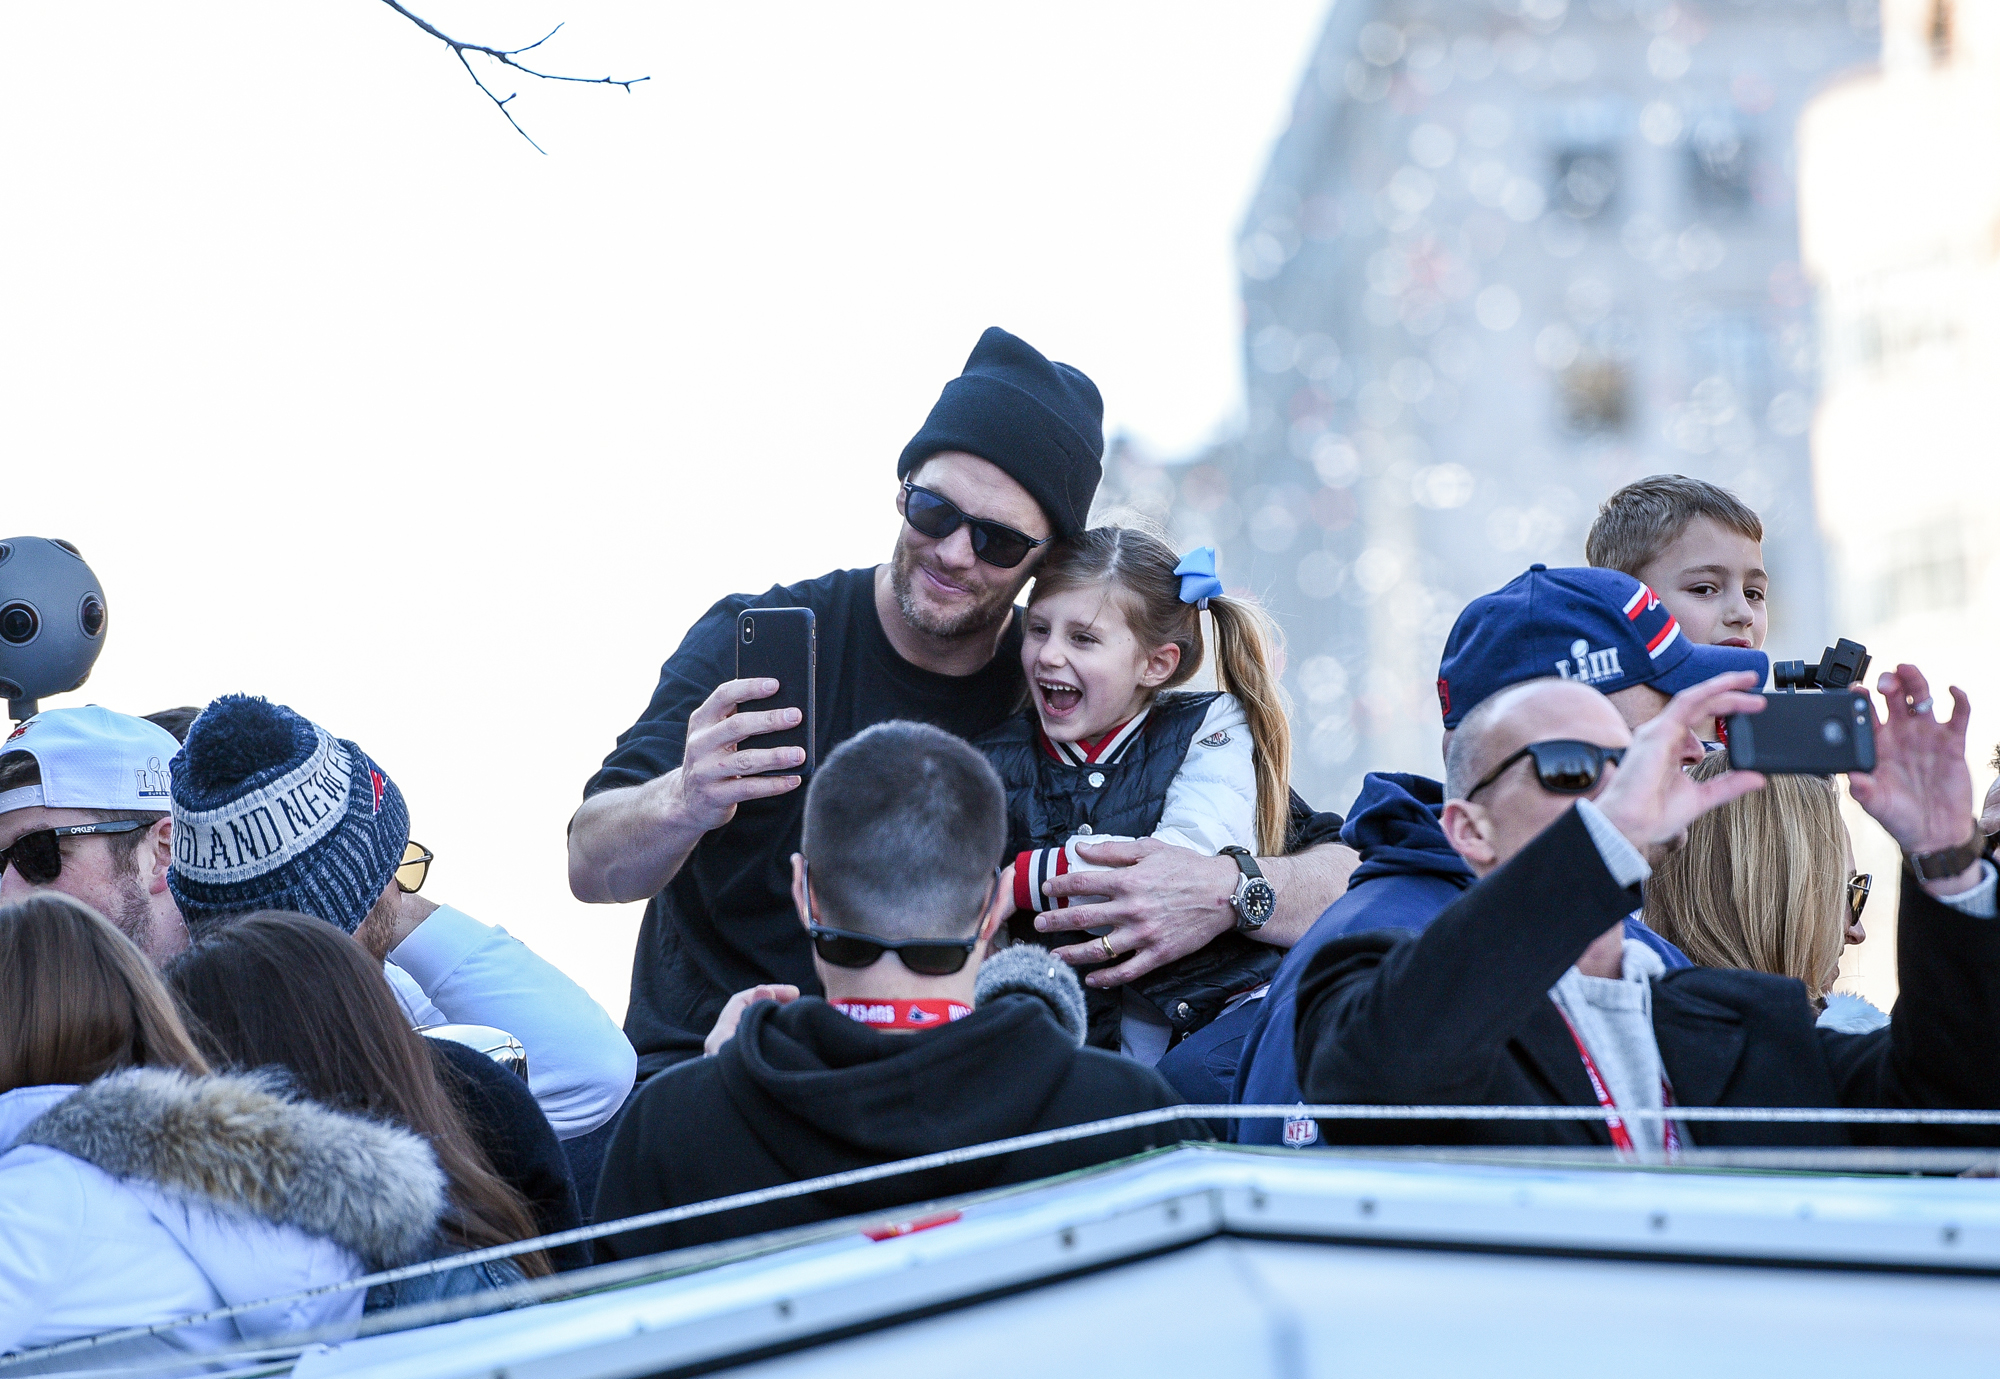 BOSTON, MA - FEBRUARY 5: Tom Brady and his daughter Vivian celebrate with thousands of fans who lined the streets of Boston to celebrate with the New England Patriots during their victory parade. February 5, 2019   (Photo By Faith Ninivaggi/ Boston Herald/ MediaNews Group via Getty Images)